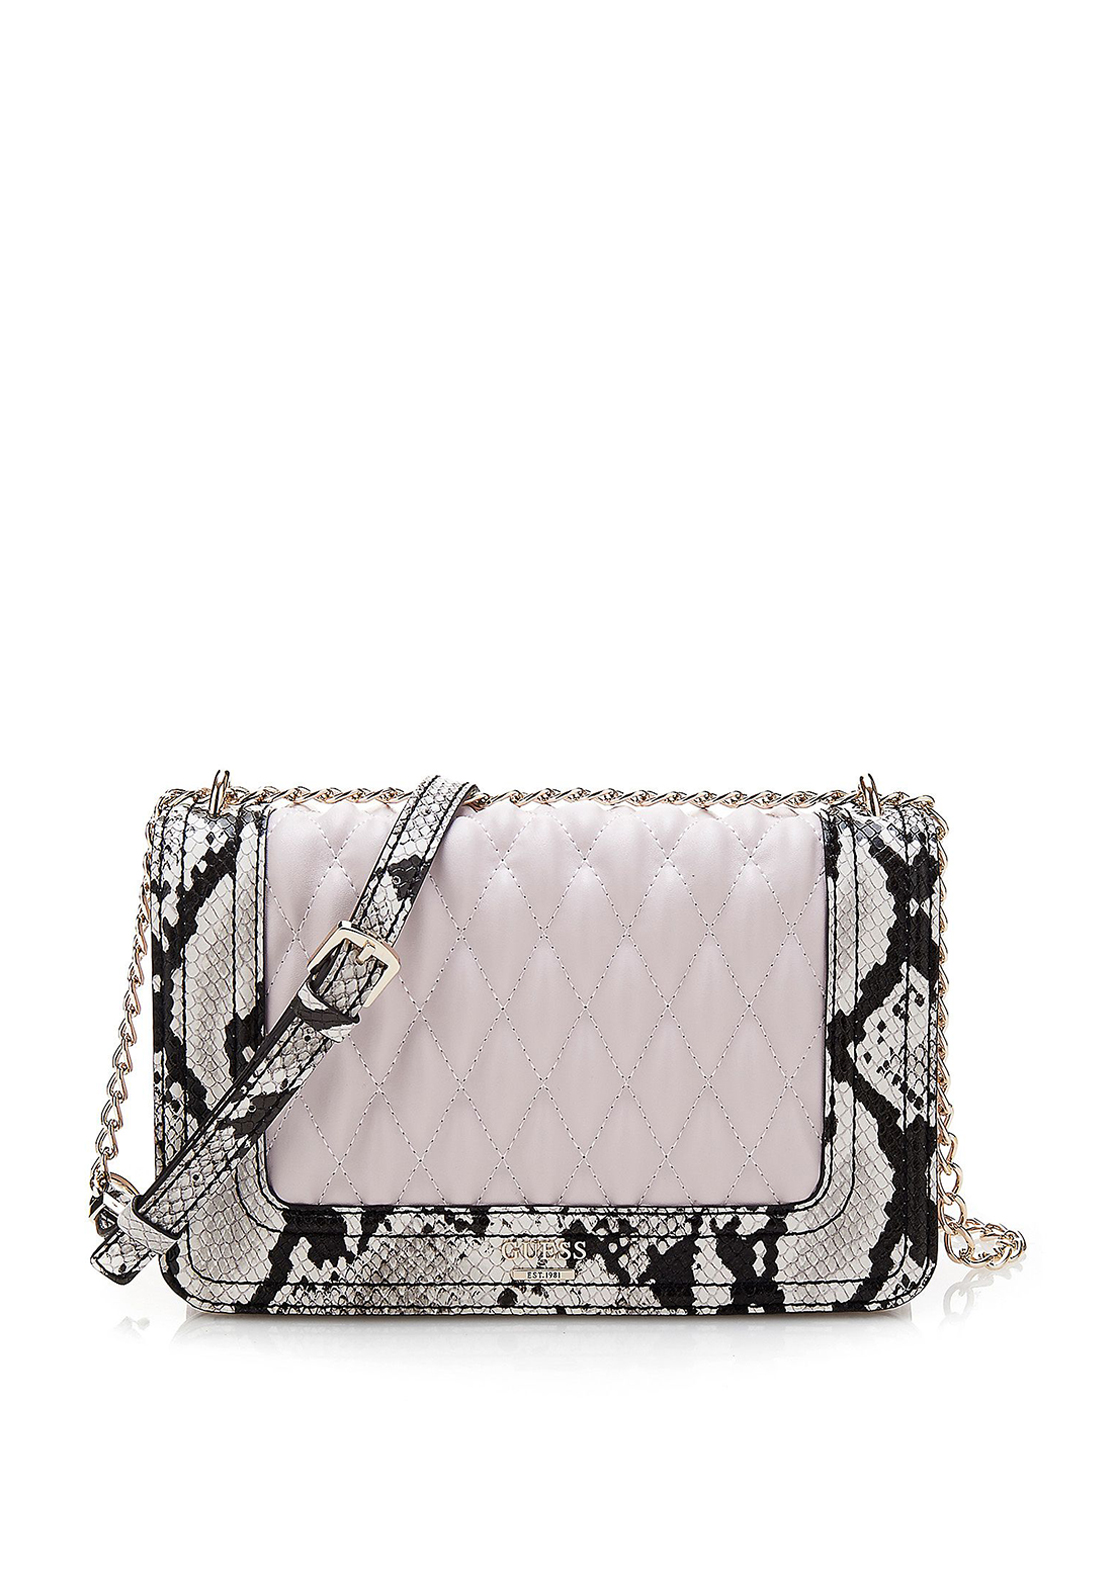 Guess Marisa Cross Body Bag, Python Print